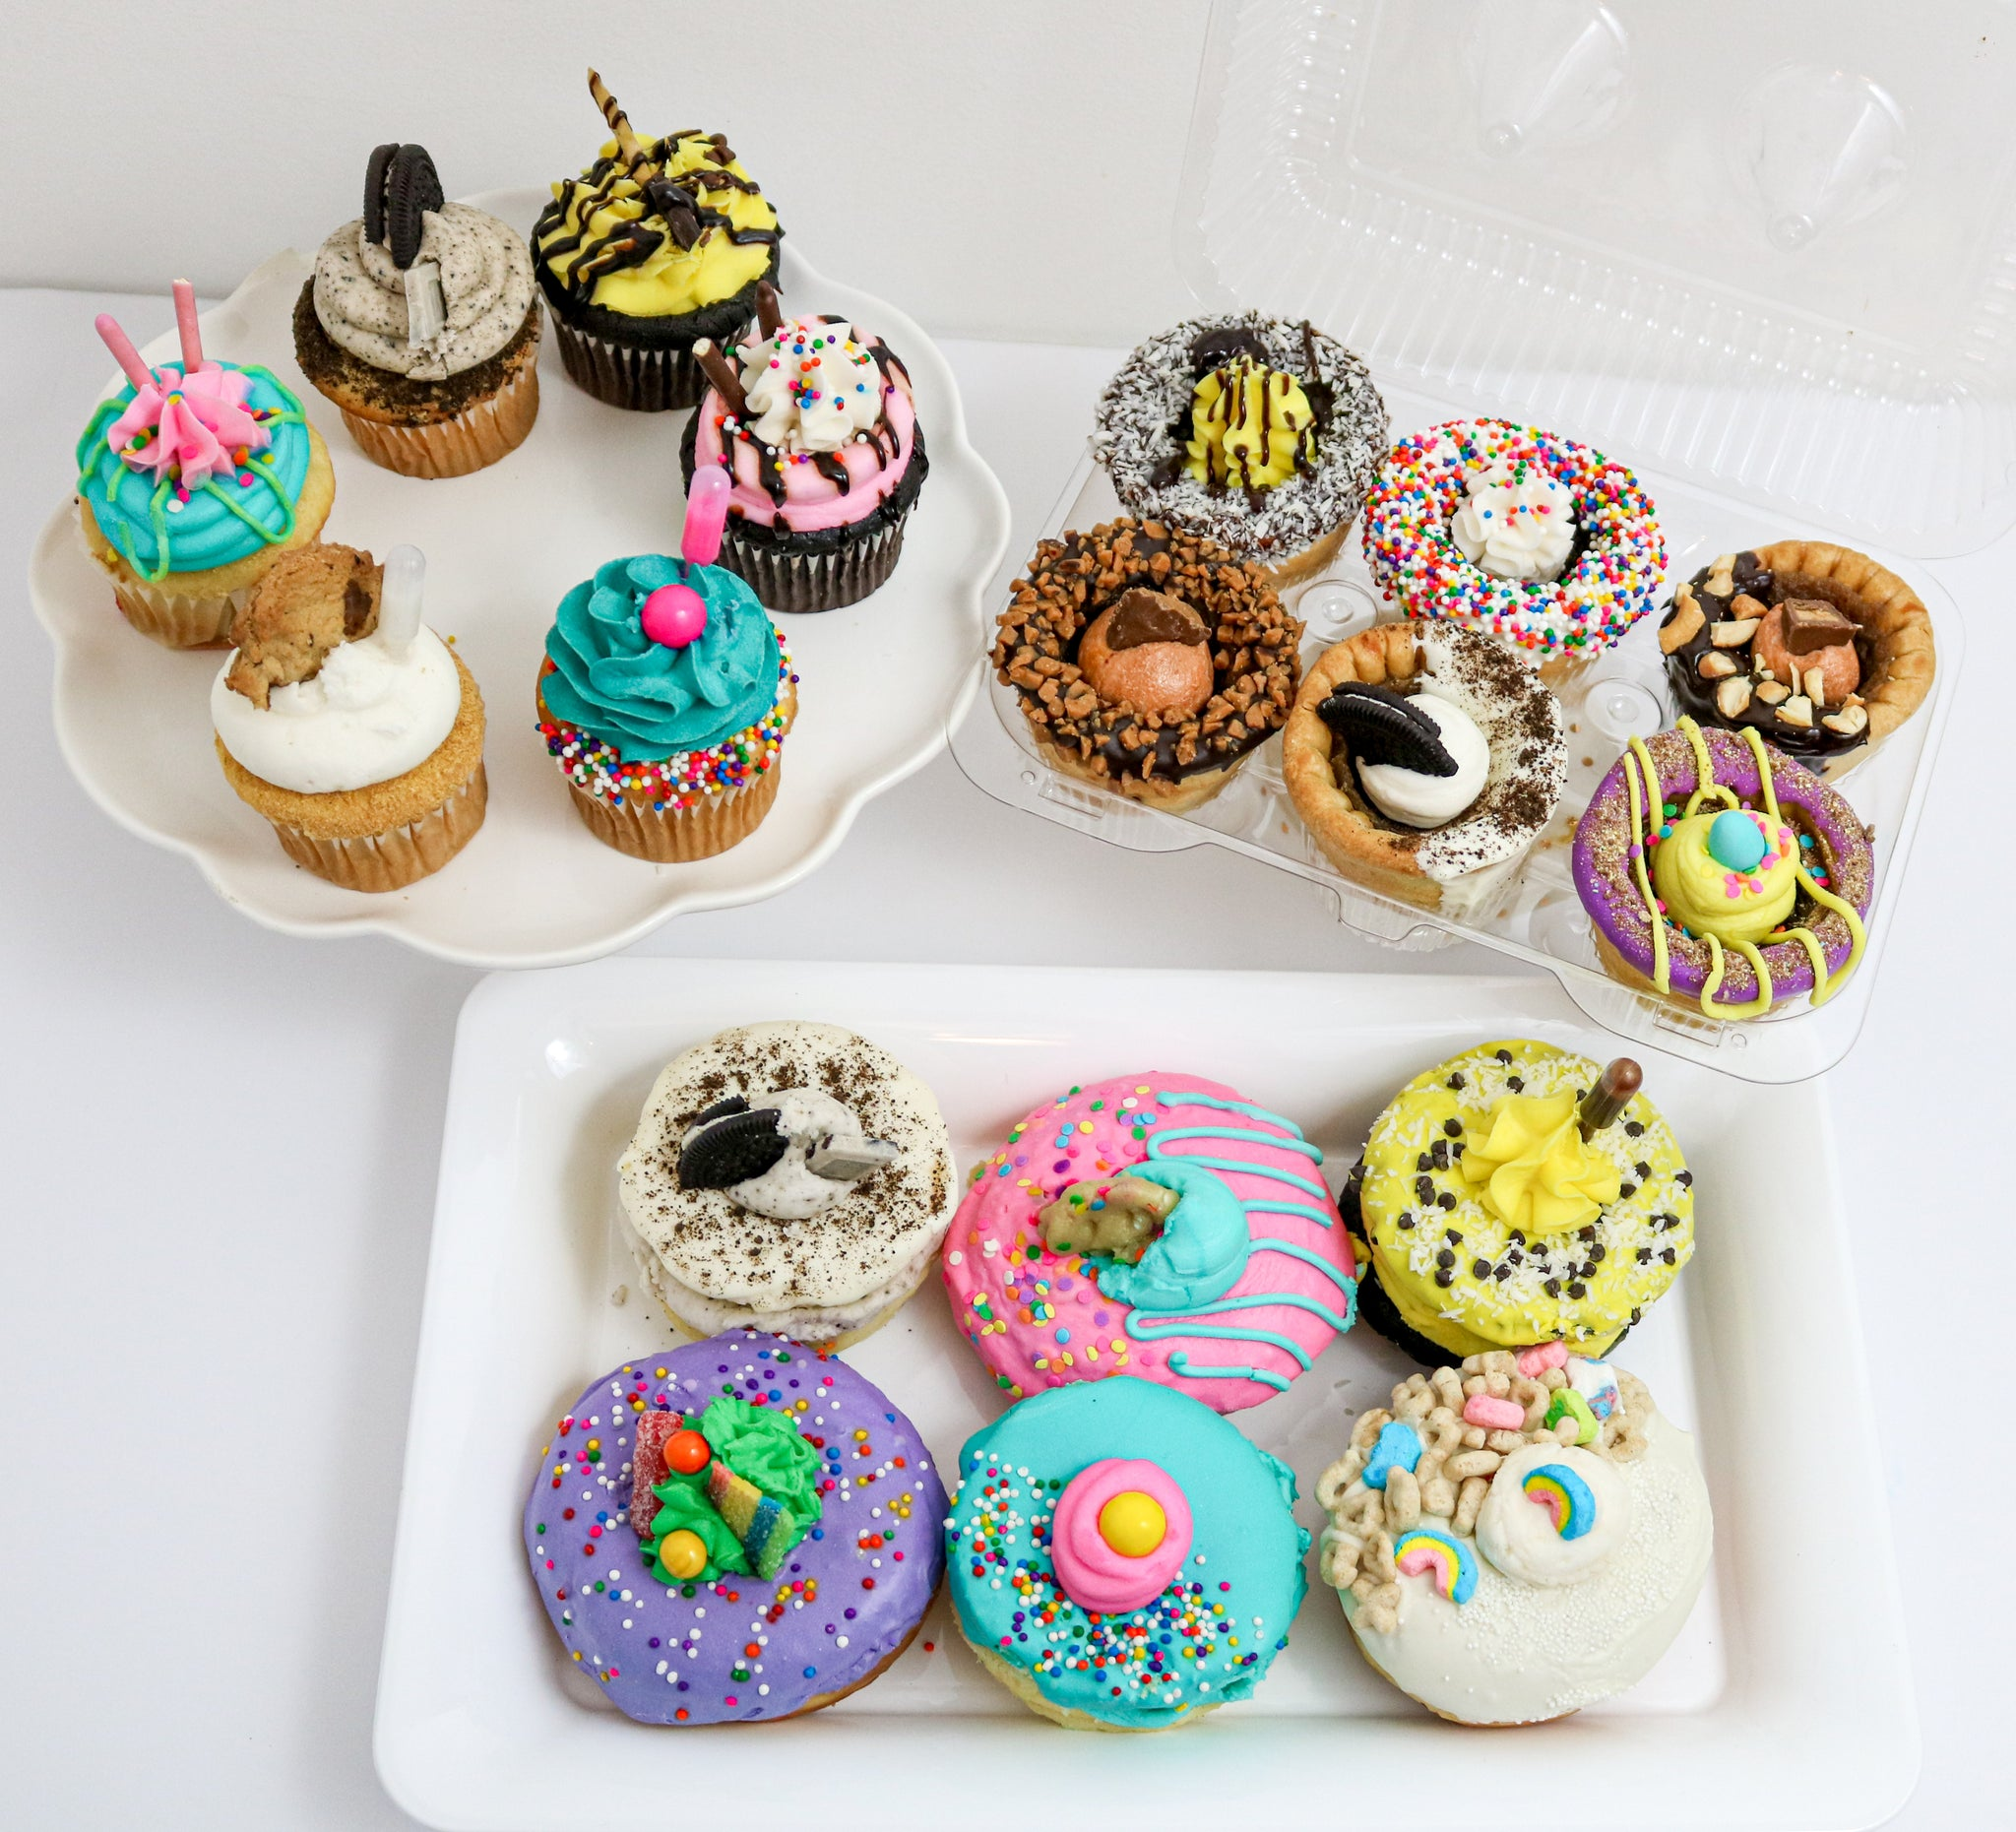 Triple Threat Pack (6 donuts, 6 cupcakes, 6 tarts)